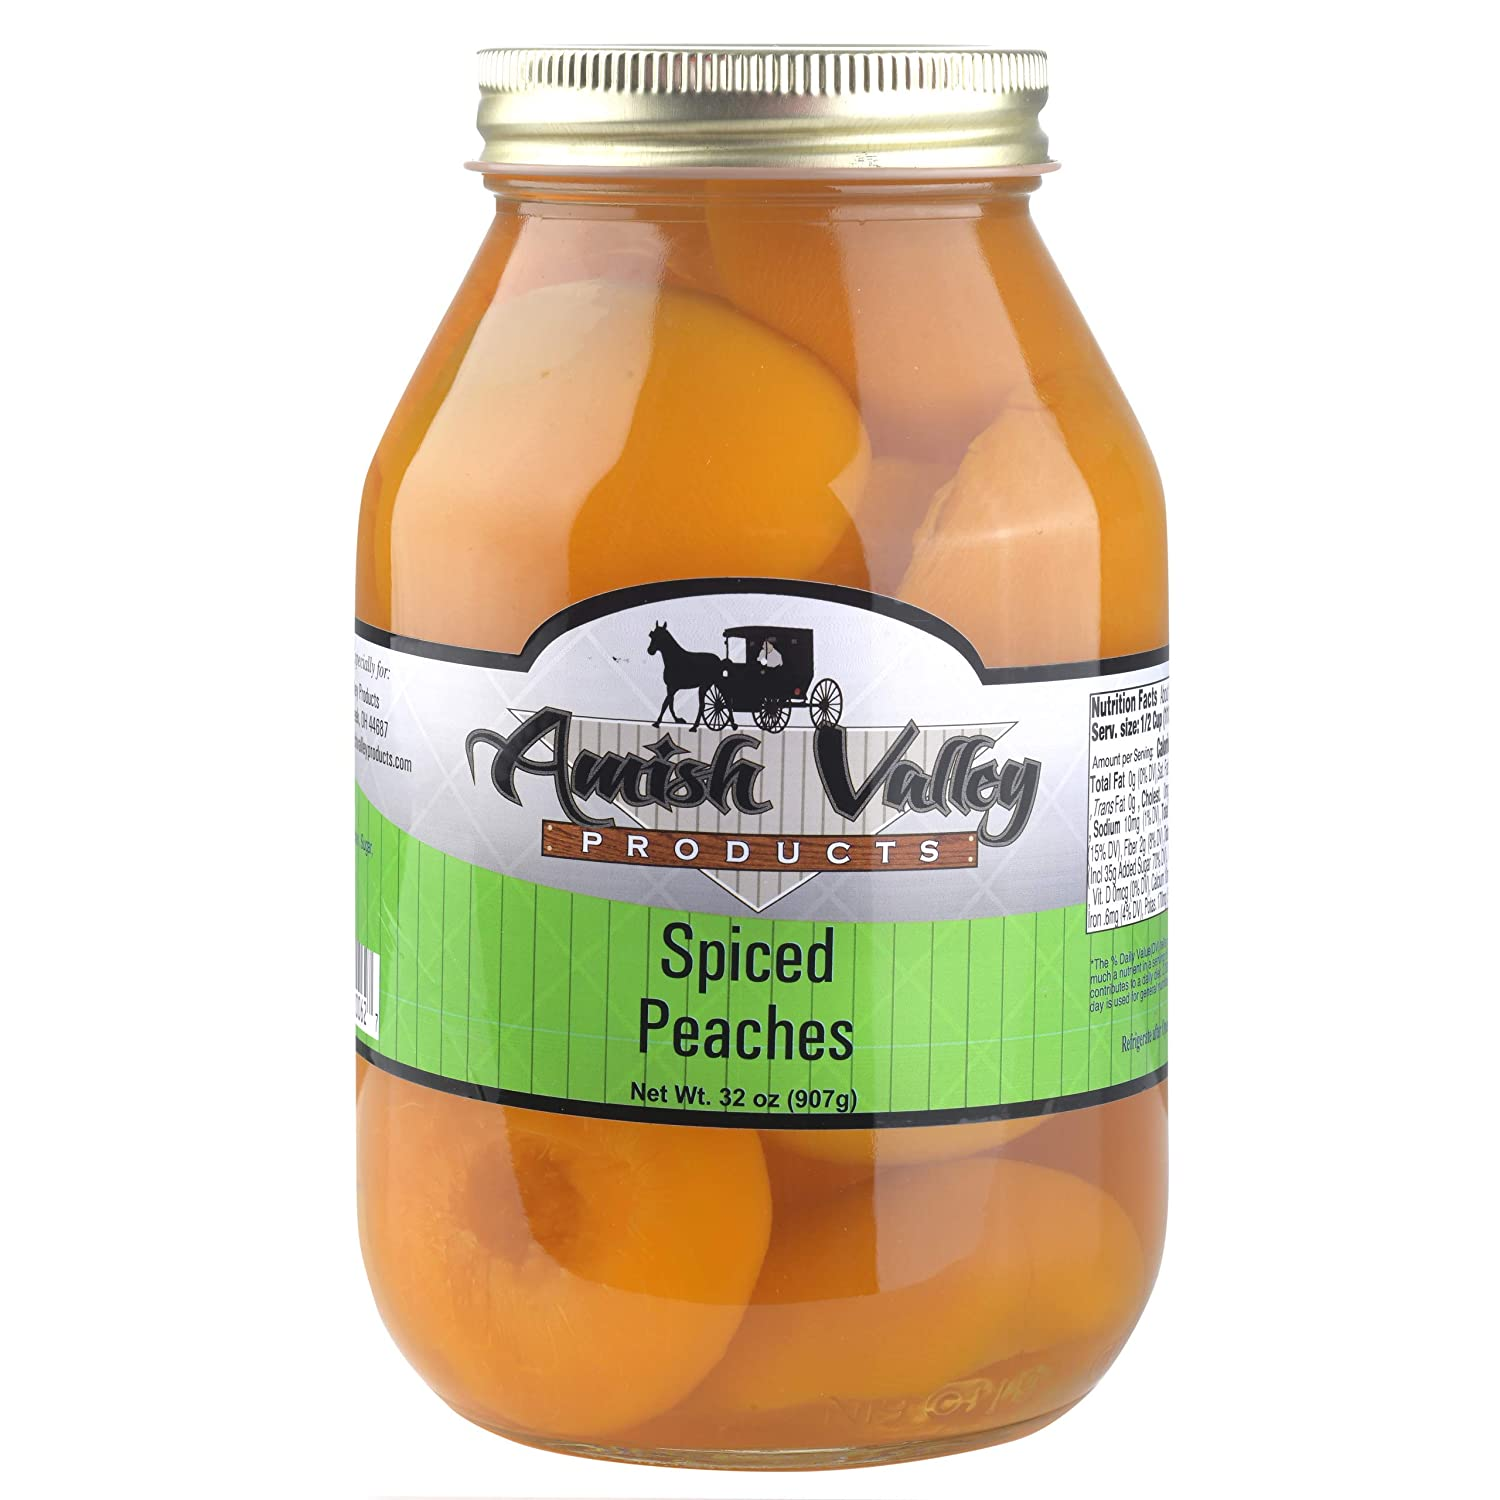 Amish Valley Products Old Fashioned SPICED Peaches Halves Canned Jarred in 32 oz Glass Jar (2 QT Jars - 32 OZ)